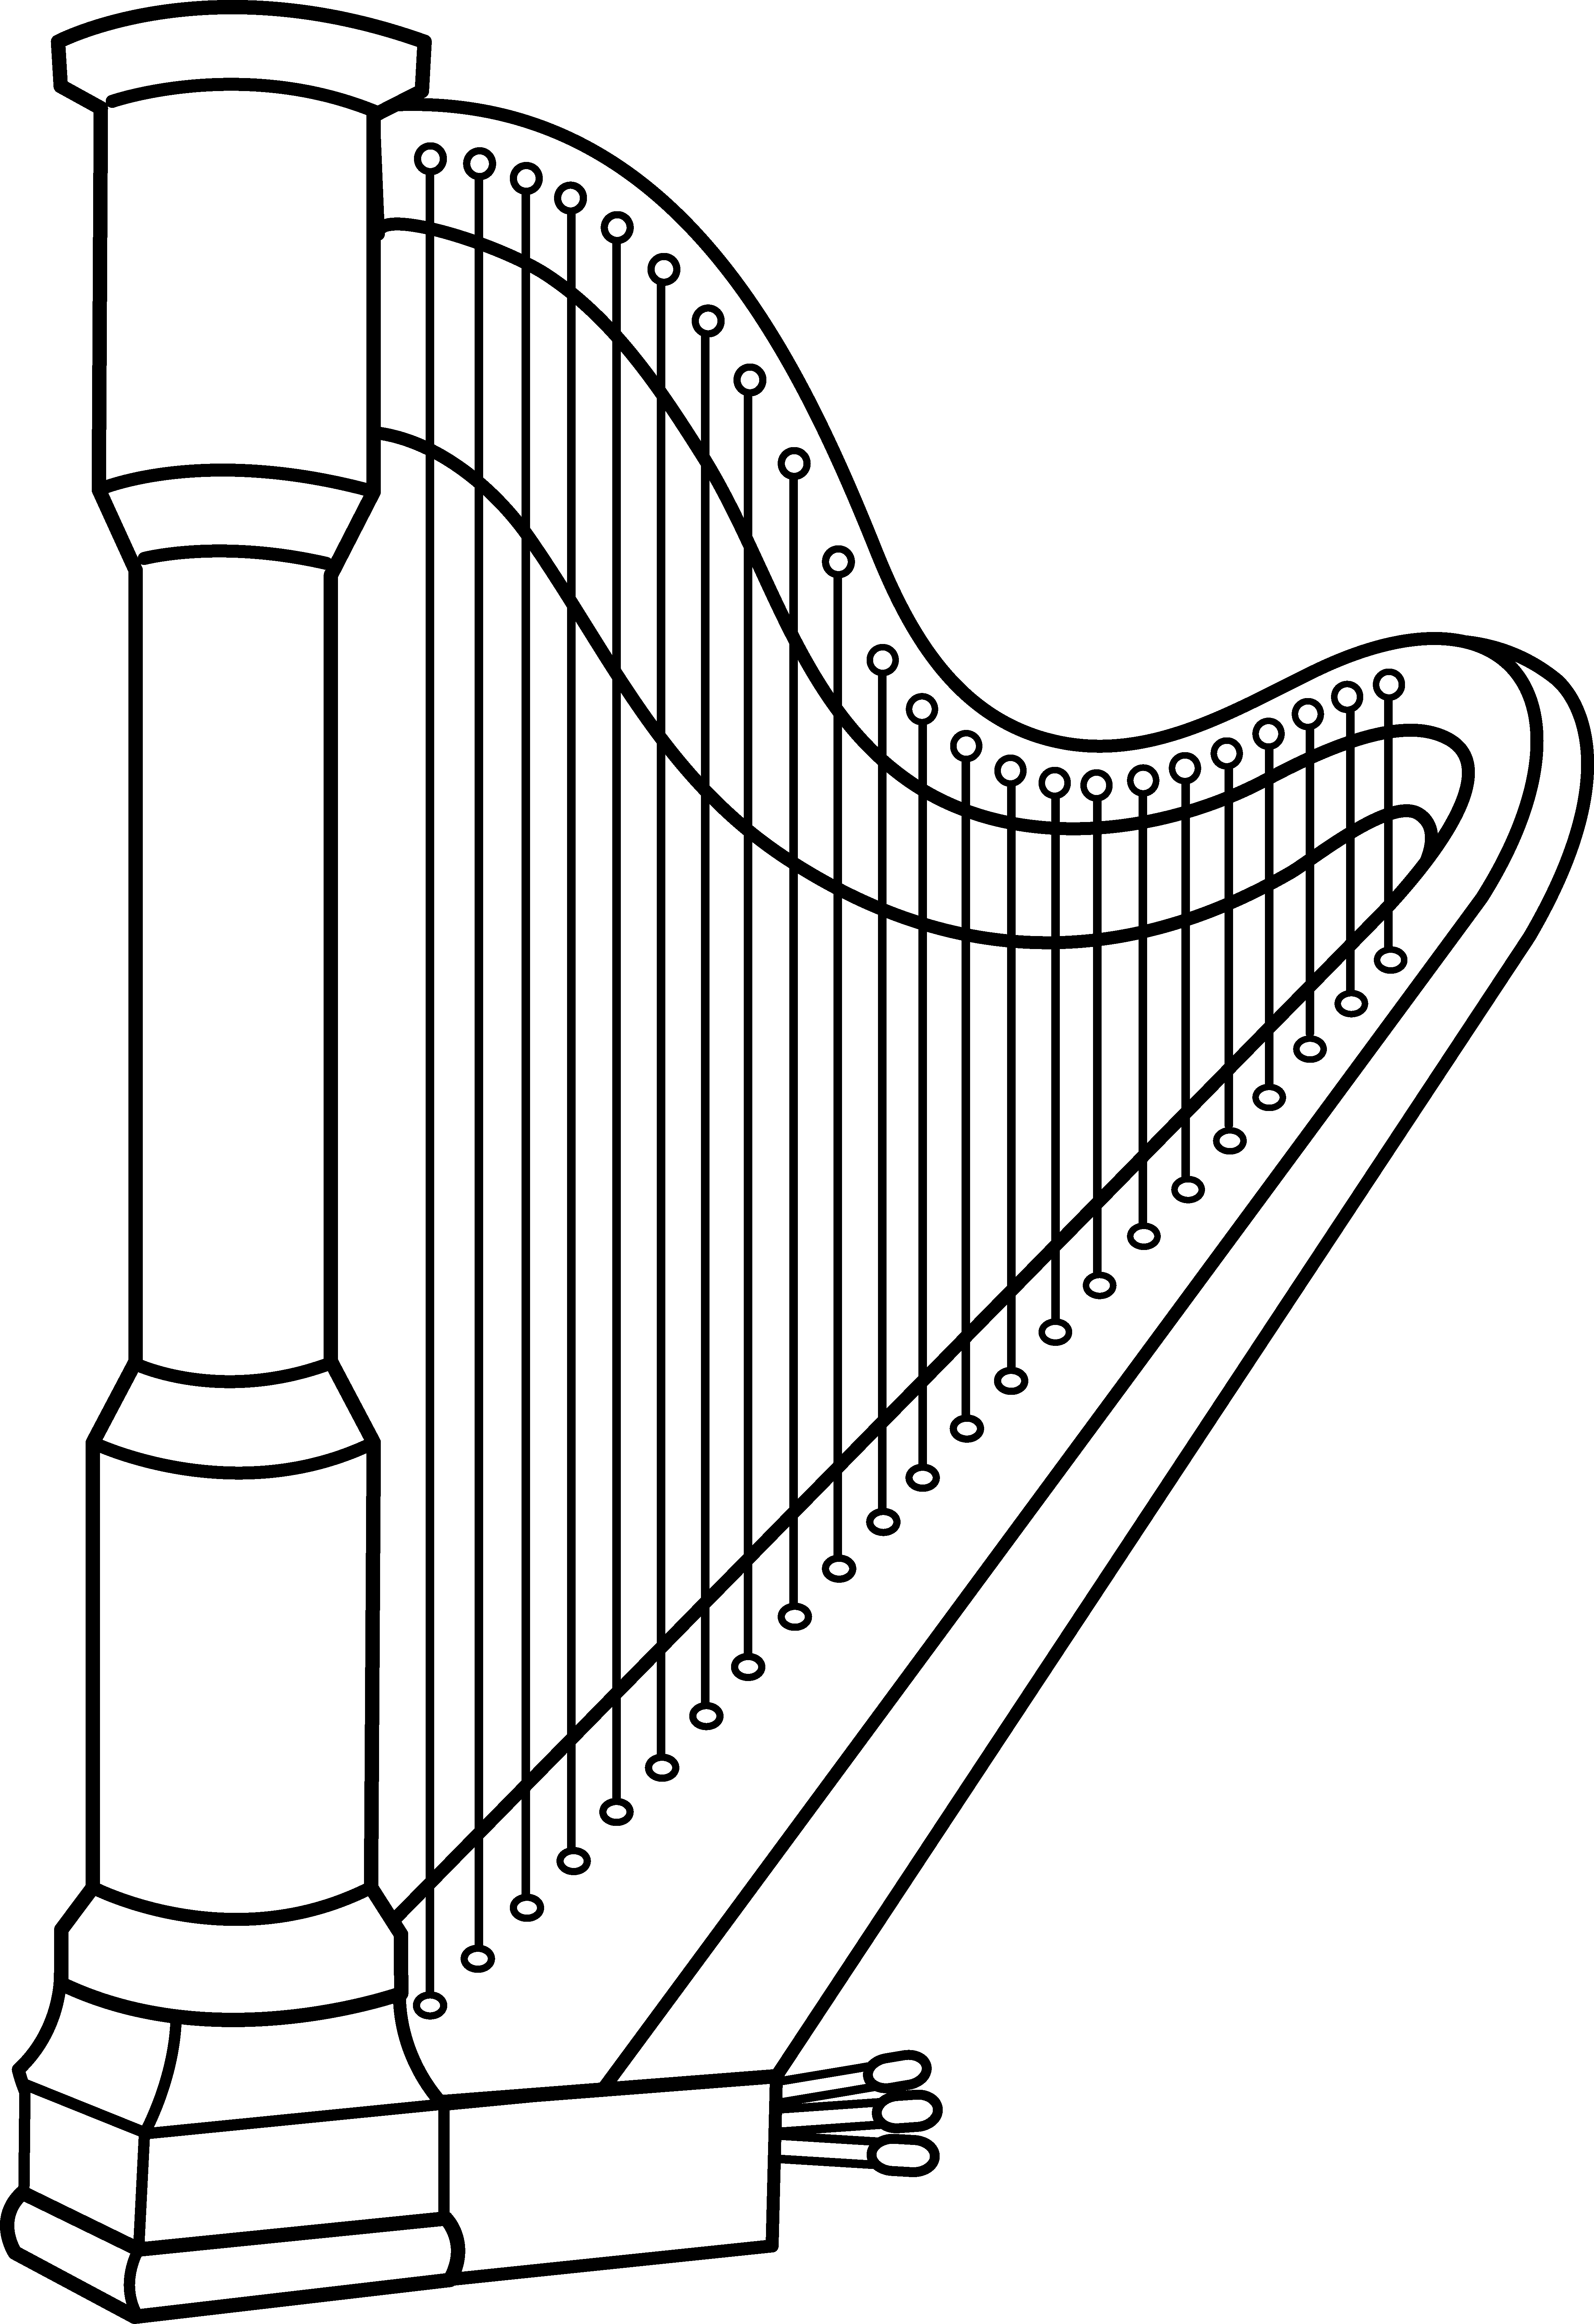 Musical harp line art. Xylophone clipart outline